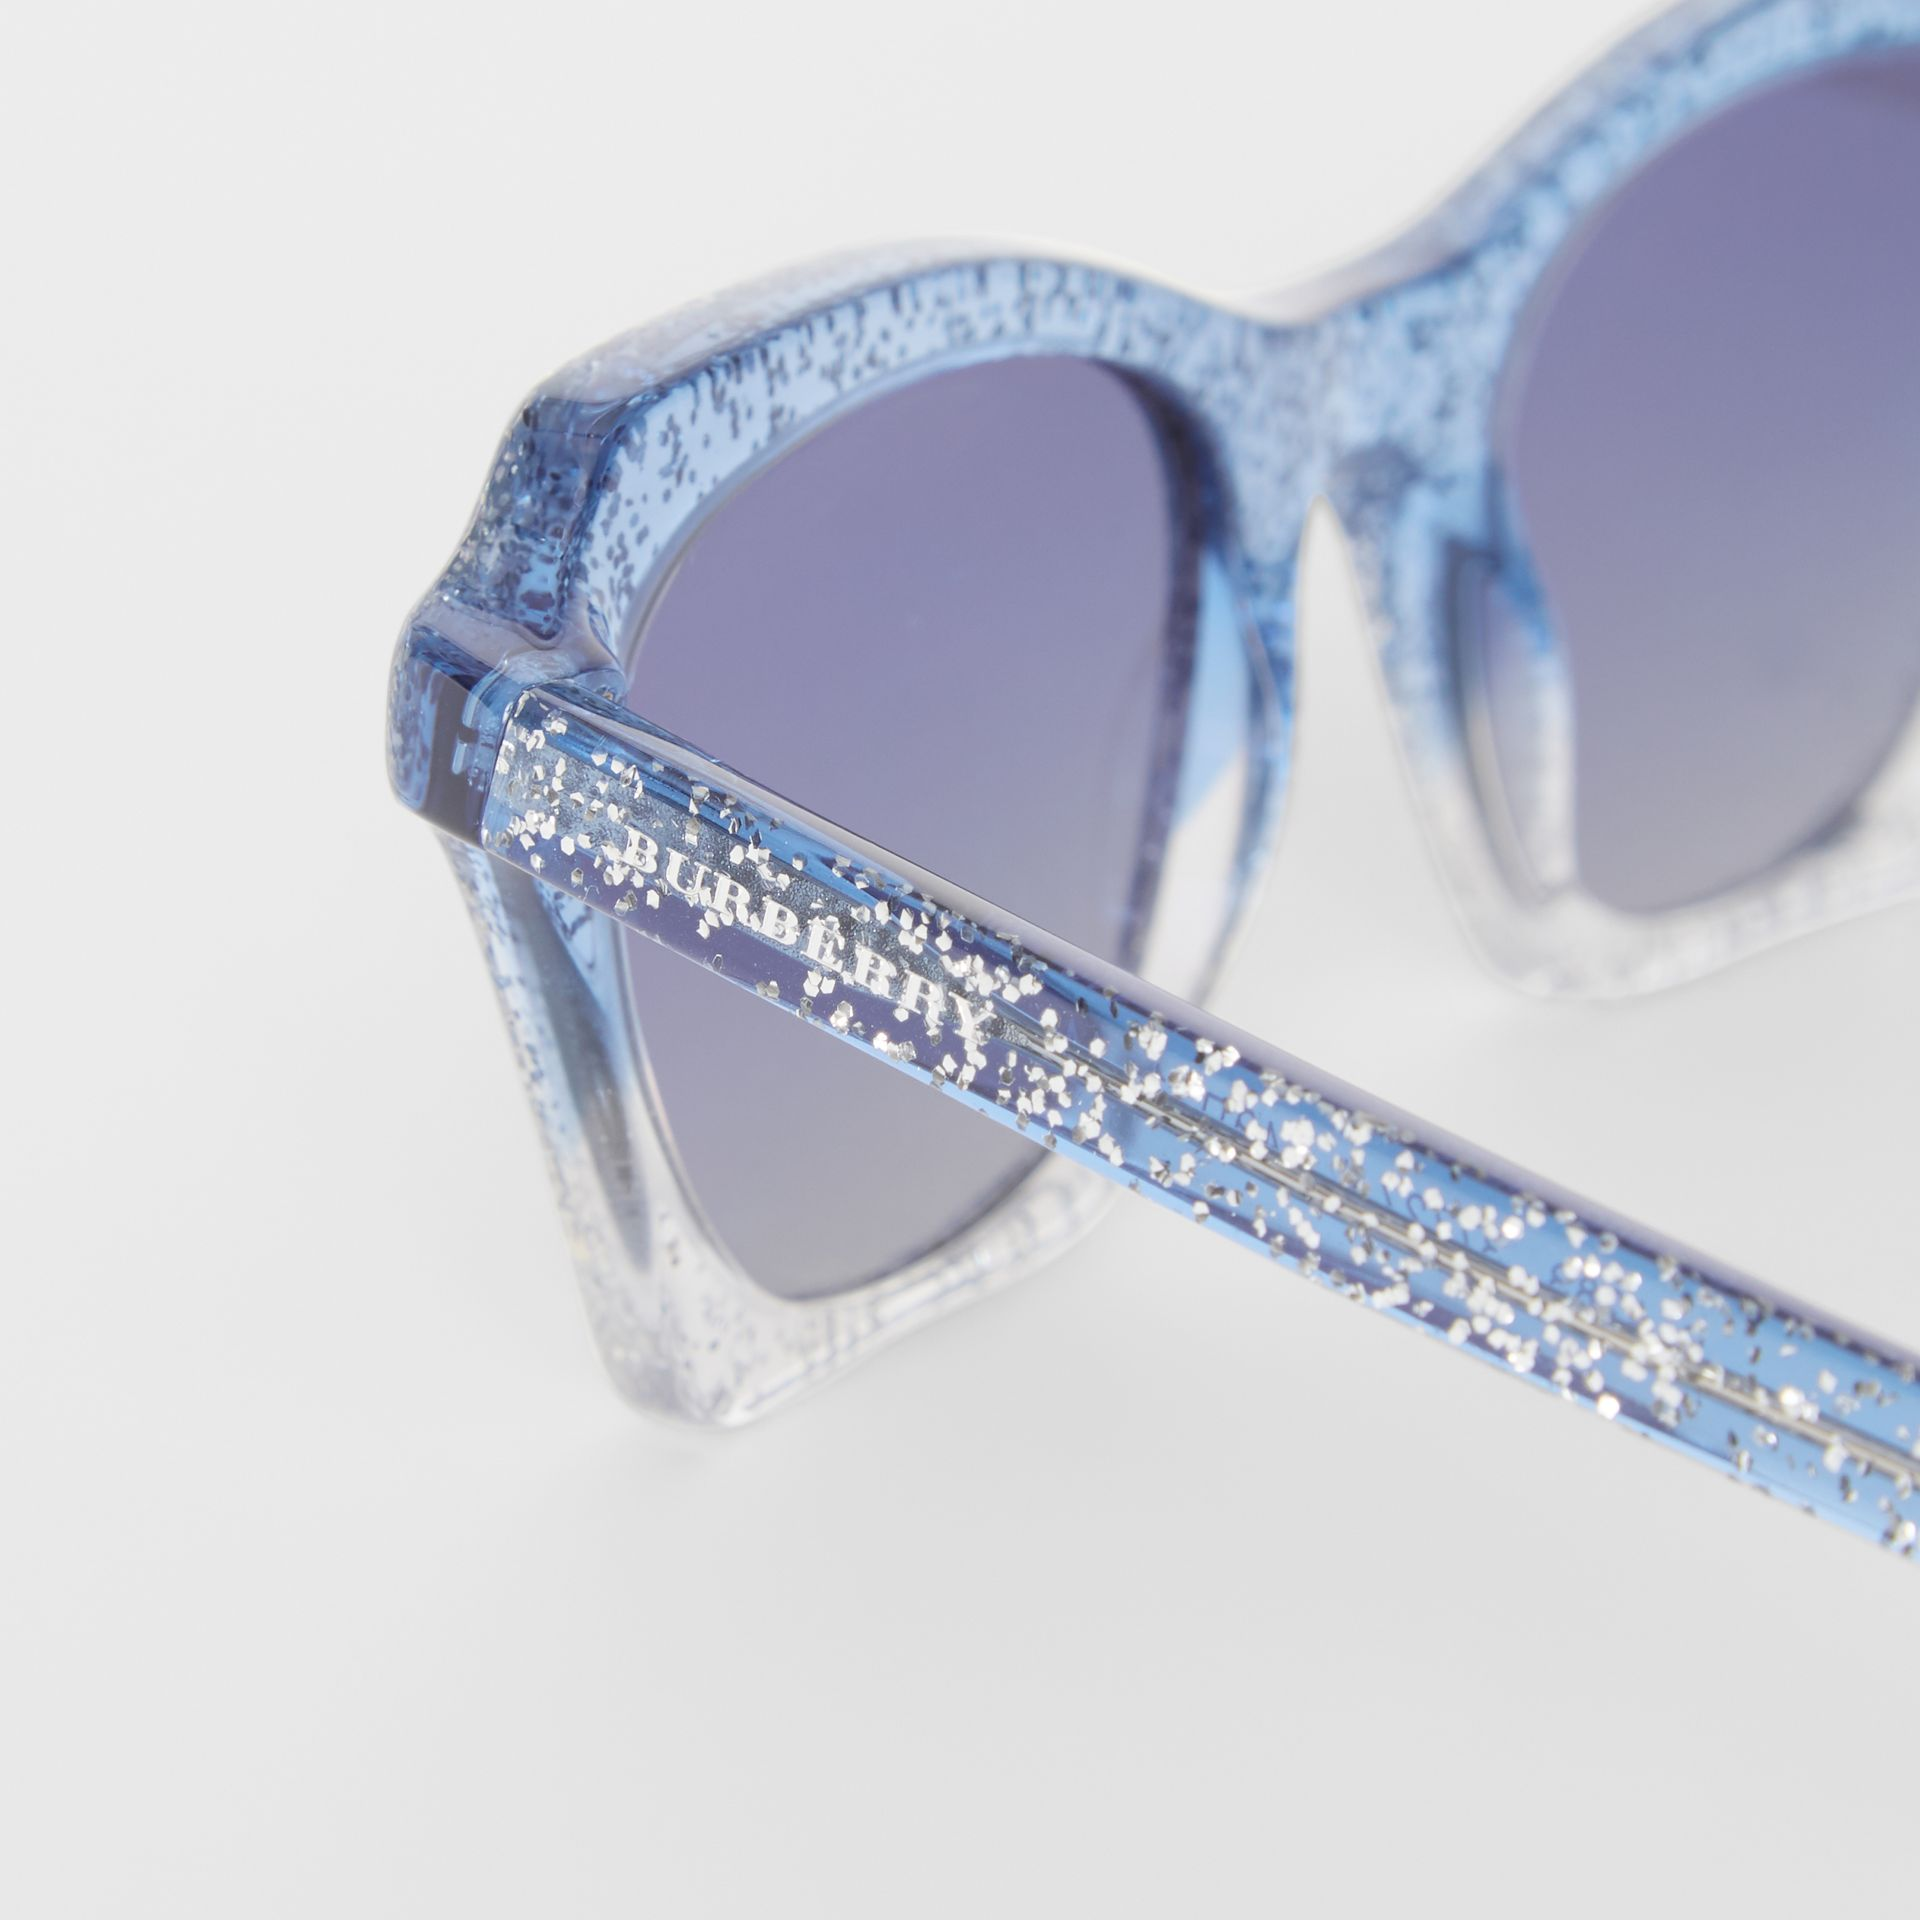 Butterfly Frame Sunglasses in Blue - Women | Burberry Singapore - gallery image 1